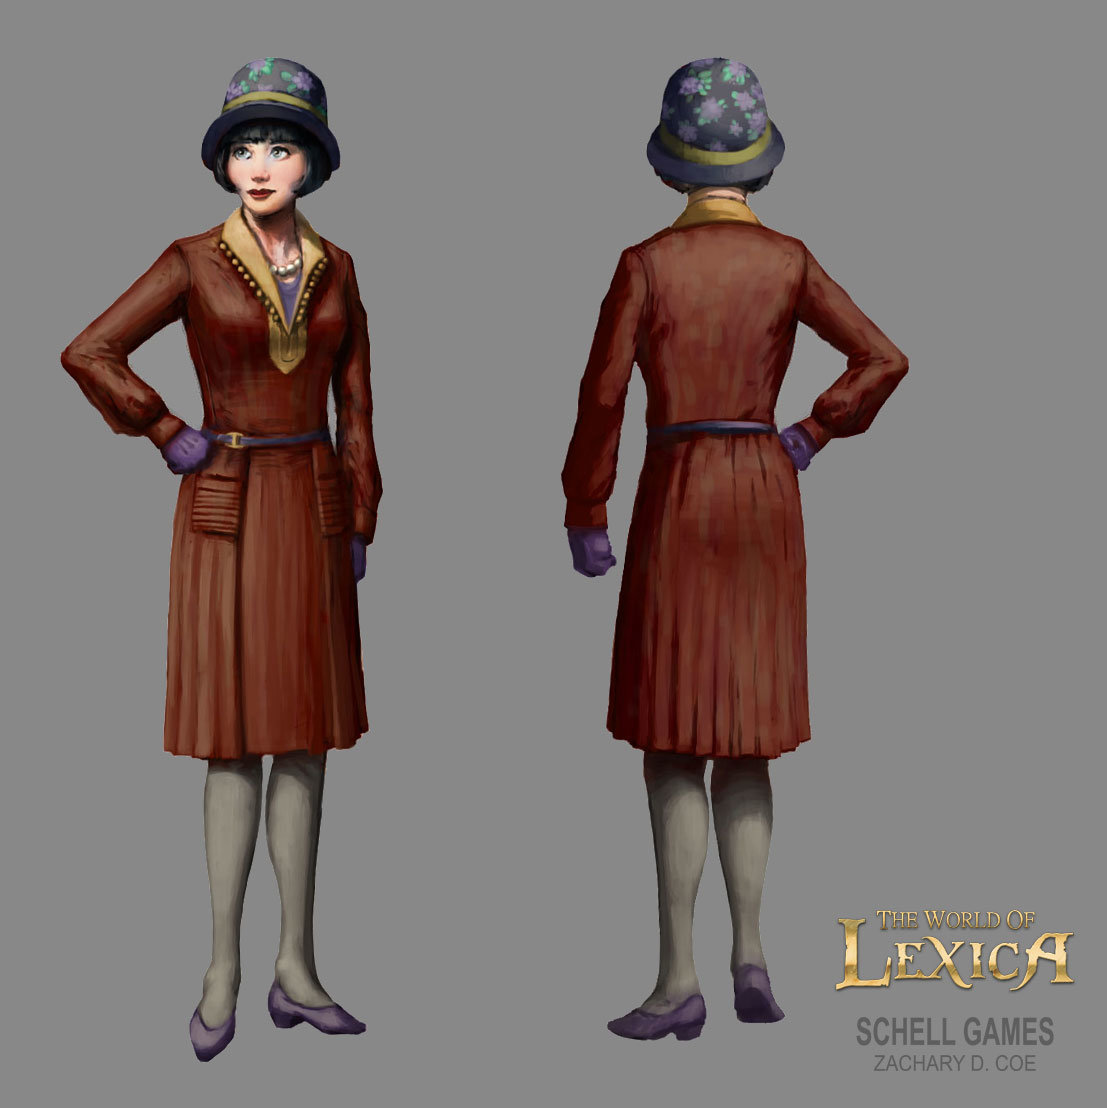 TUPPENCE COWLEY Final Concept Design by Zachary D. Coe